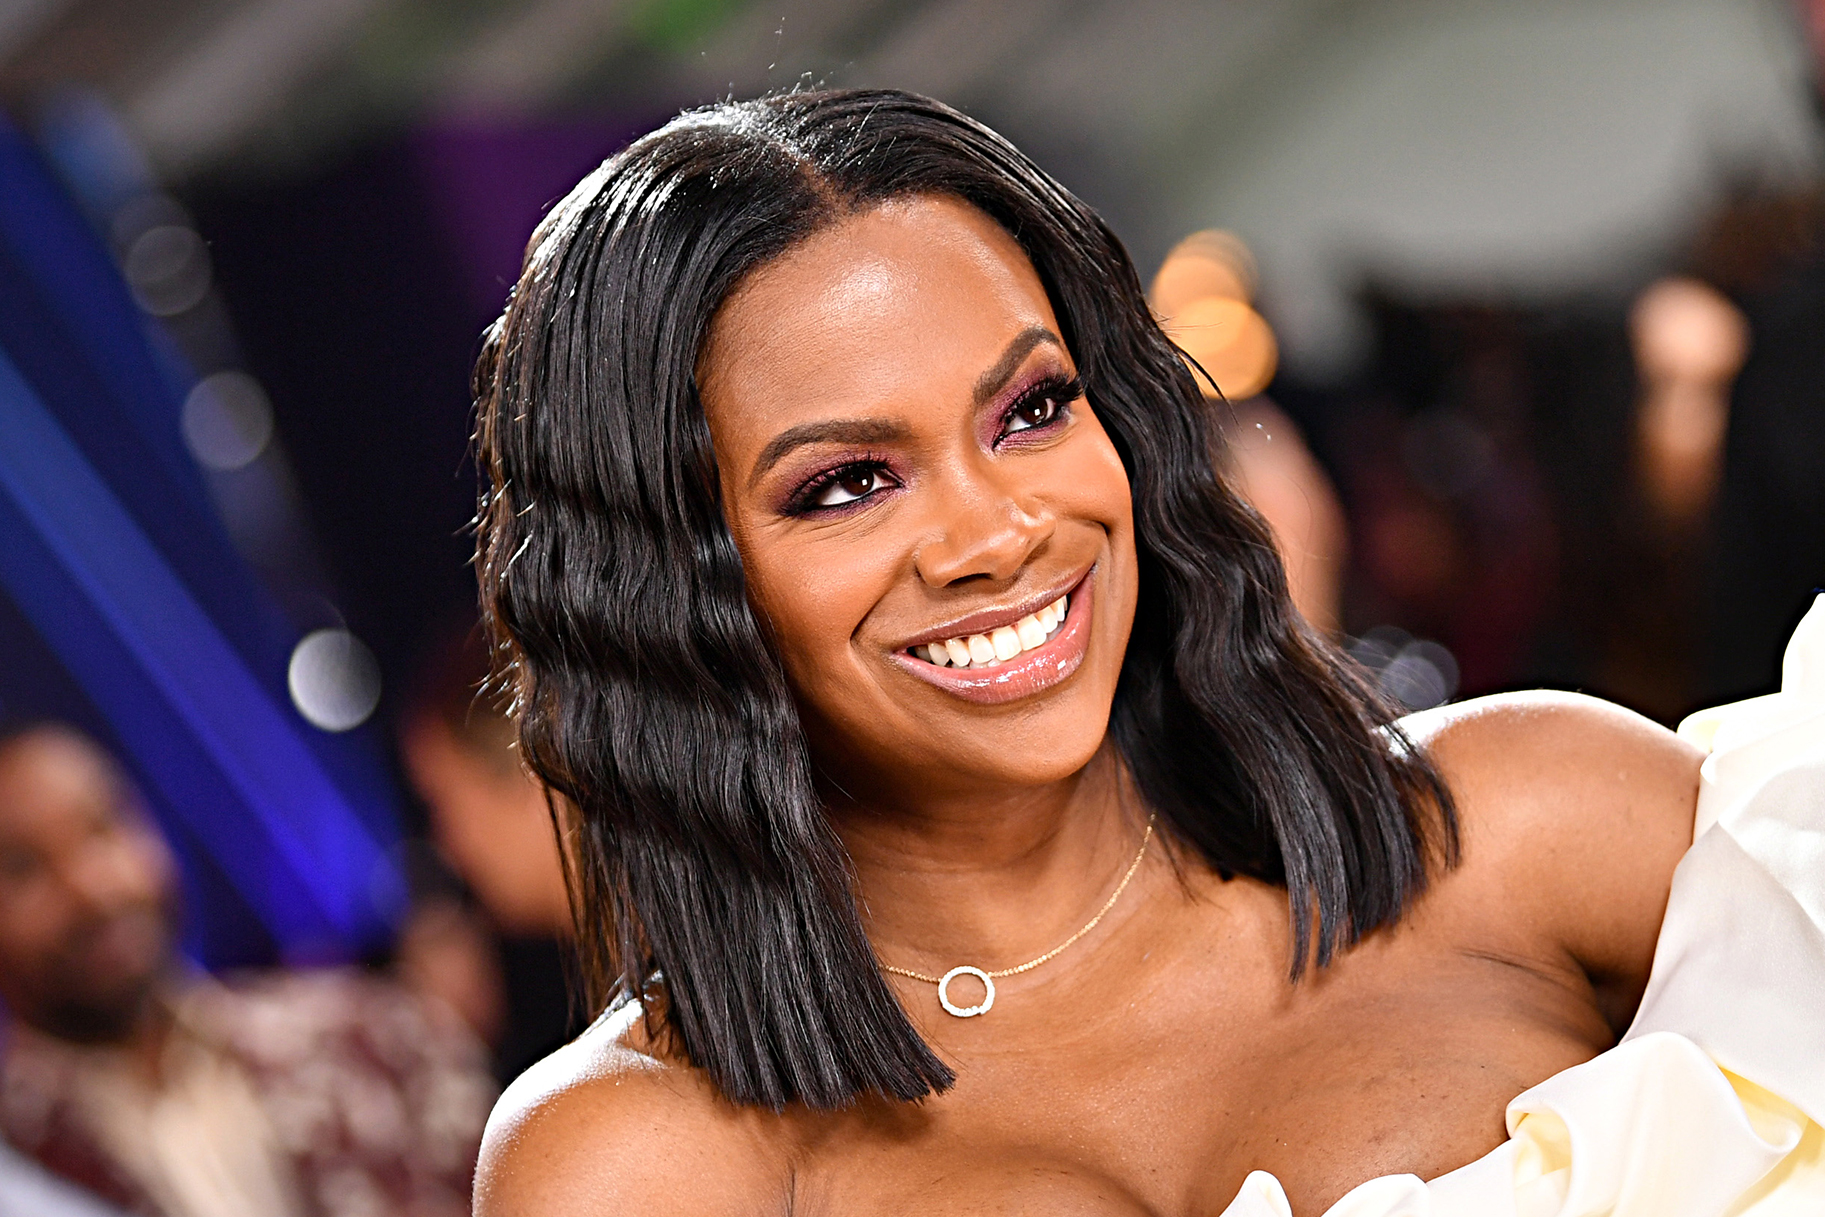 kandi-burruss-wishes-a-happy-birthday-to-a-friend-who-is-an-example-of-a-real-boss